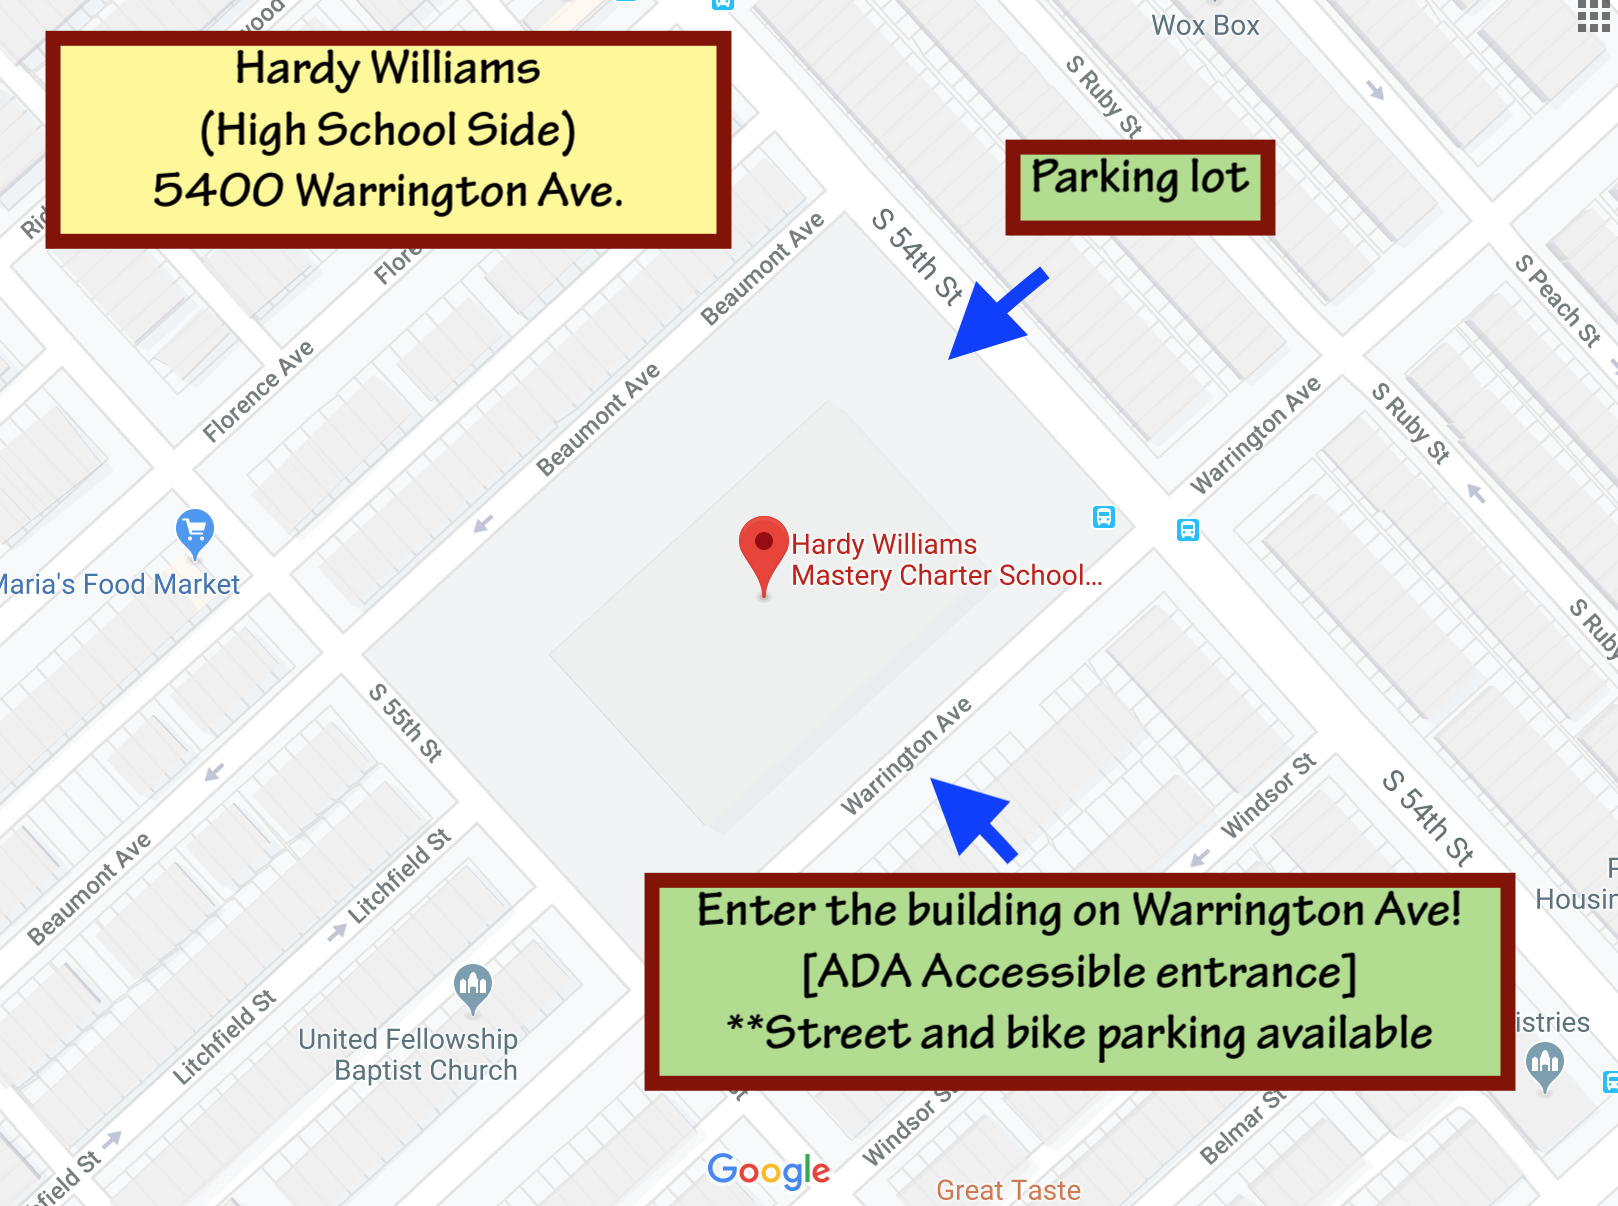 Where is Rock Camp located? - Hardy Williams Mastery Charter High School5400 Warrington Ave. Public transportation options: 13 Trolley Stop @ 54th and Chester Ave. 34 Trolley Stop @ 55th and Baltimore Ave.Right next to a 52 Bus Stop.